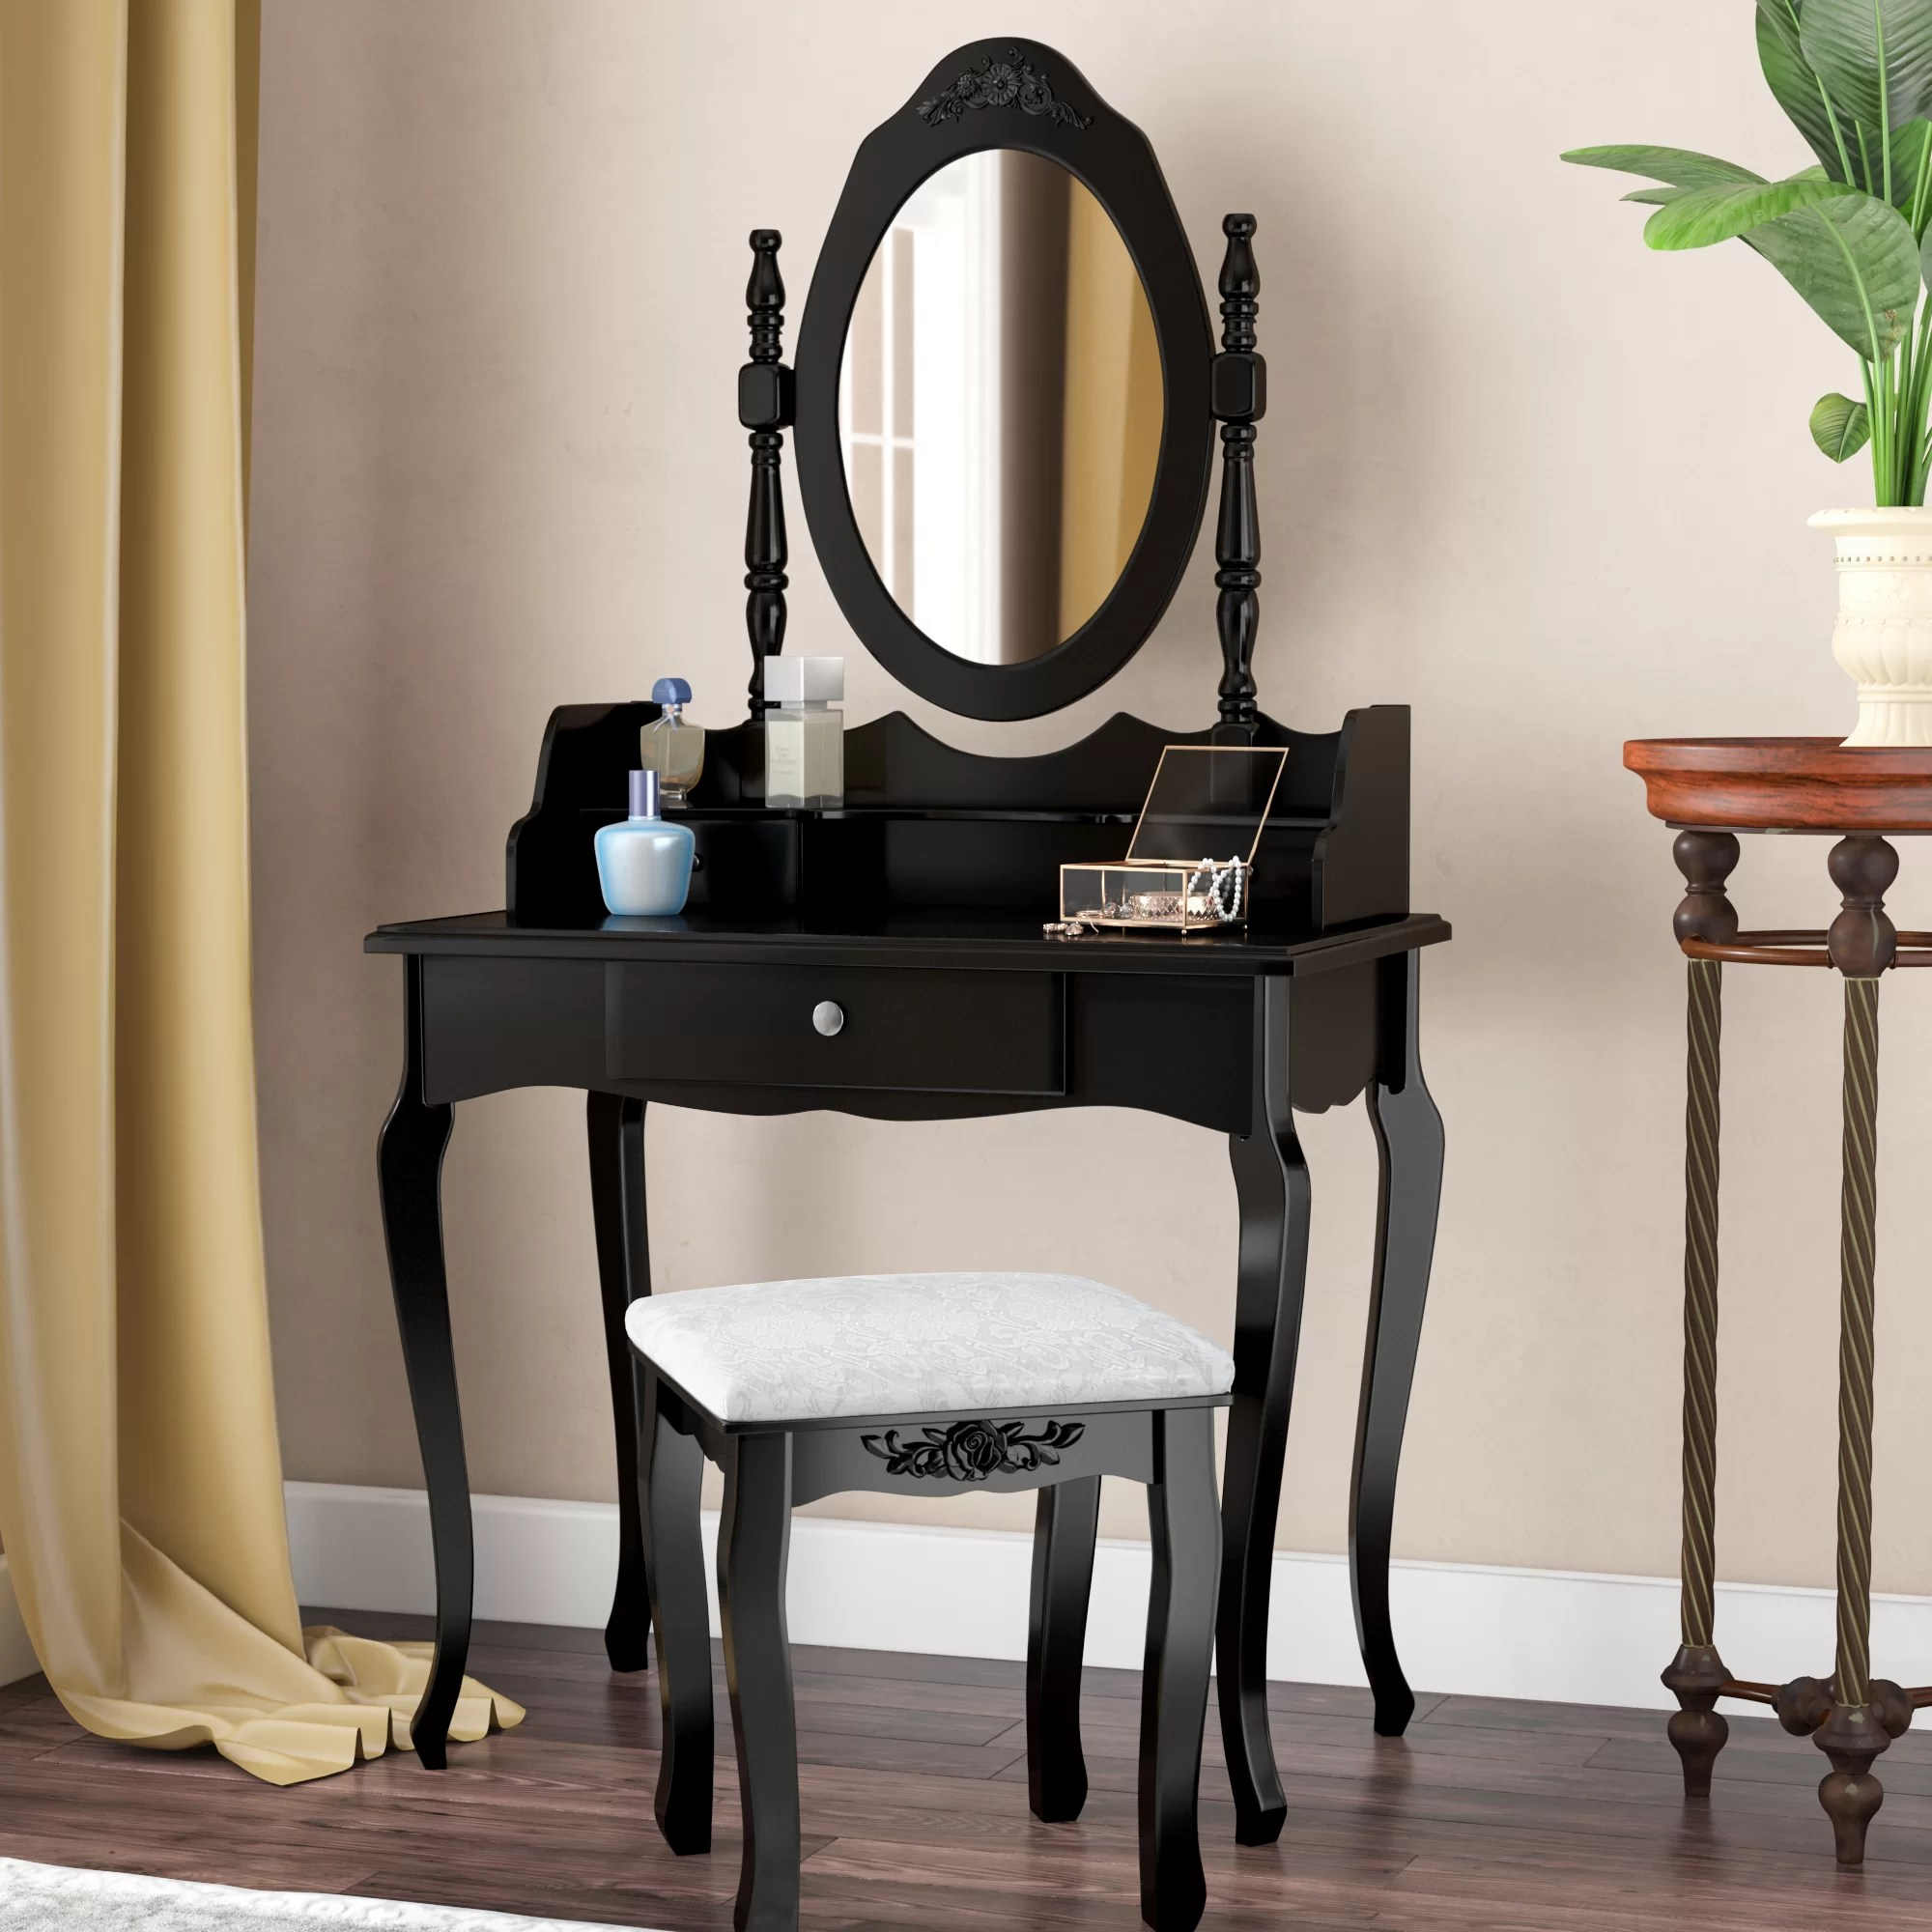 Makeup Table Perth Antique Makeup Vanity With Mirror Zef Jam